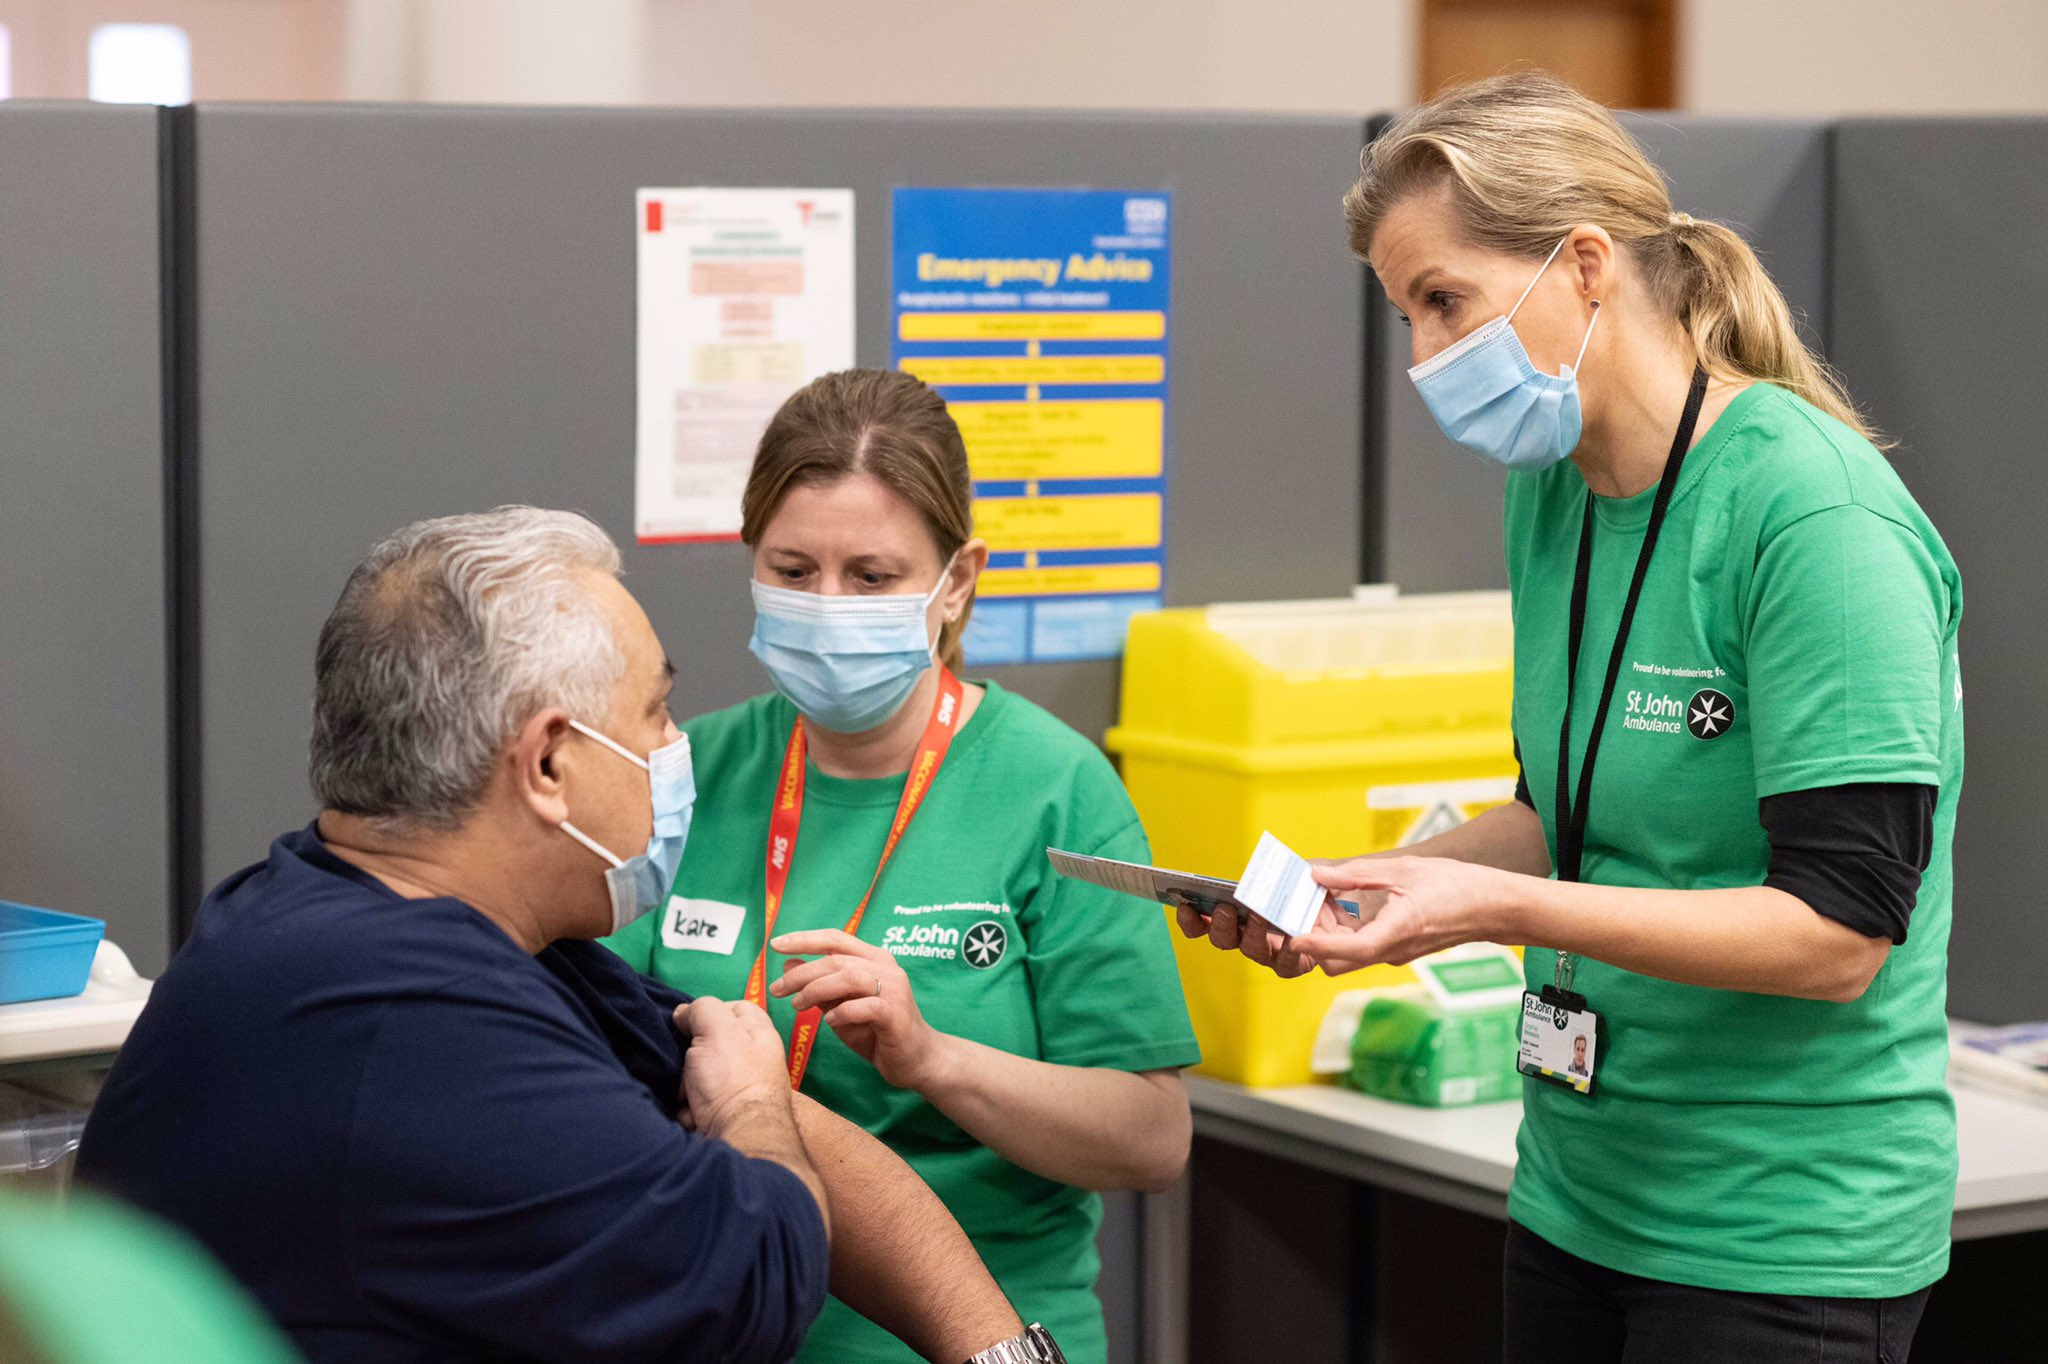 The Grand President of St John Ambulance and a care volunteer for the charity, The Countess of Wessex started volunteering at its vaccination centre to assist the Covid-19 vaccine rollout across the country.